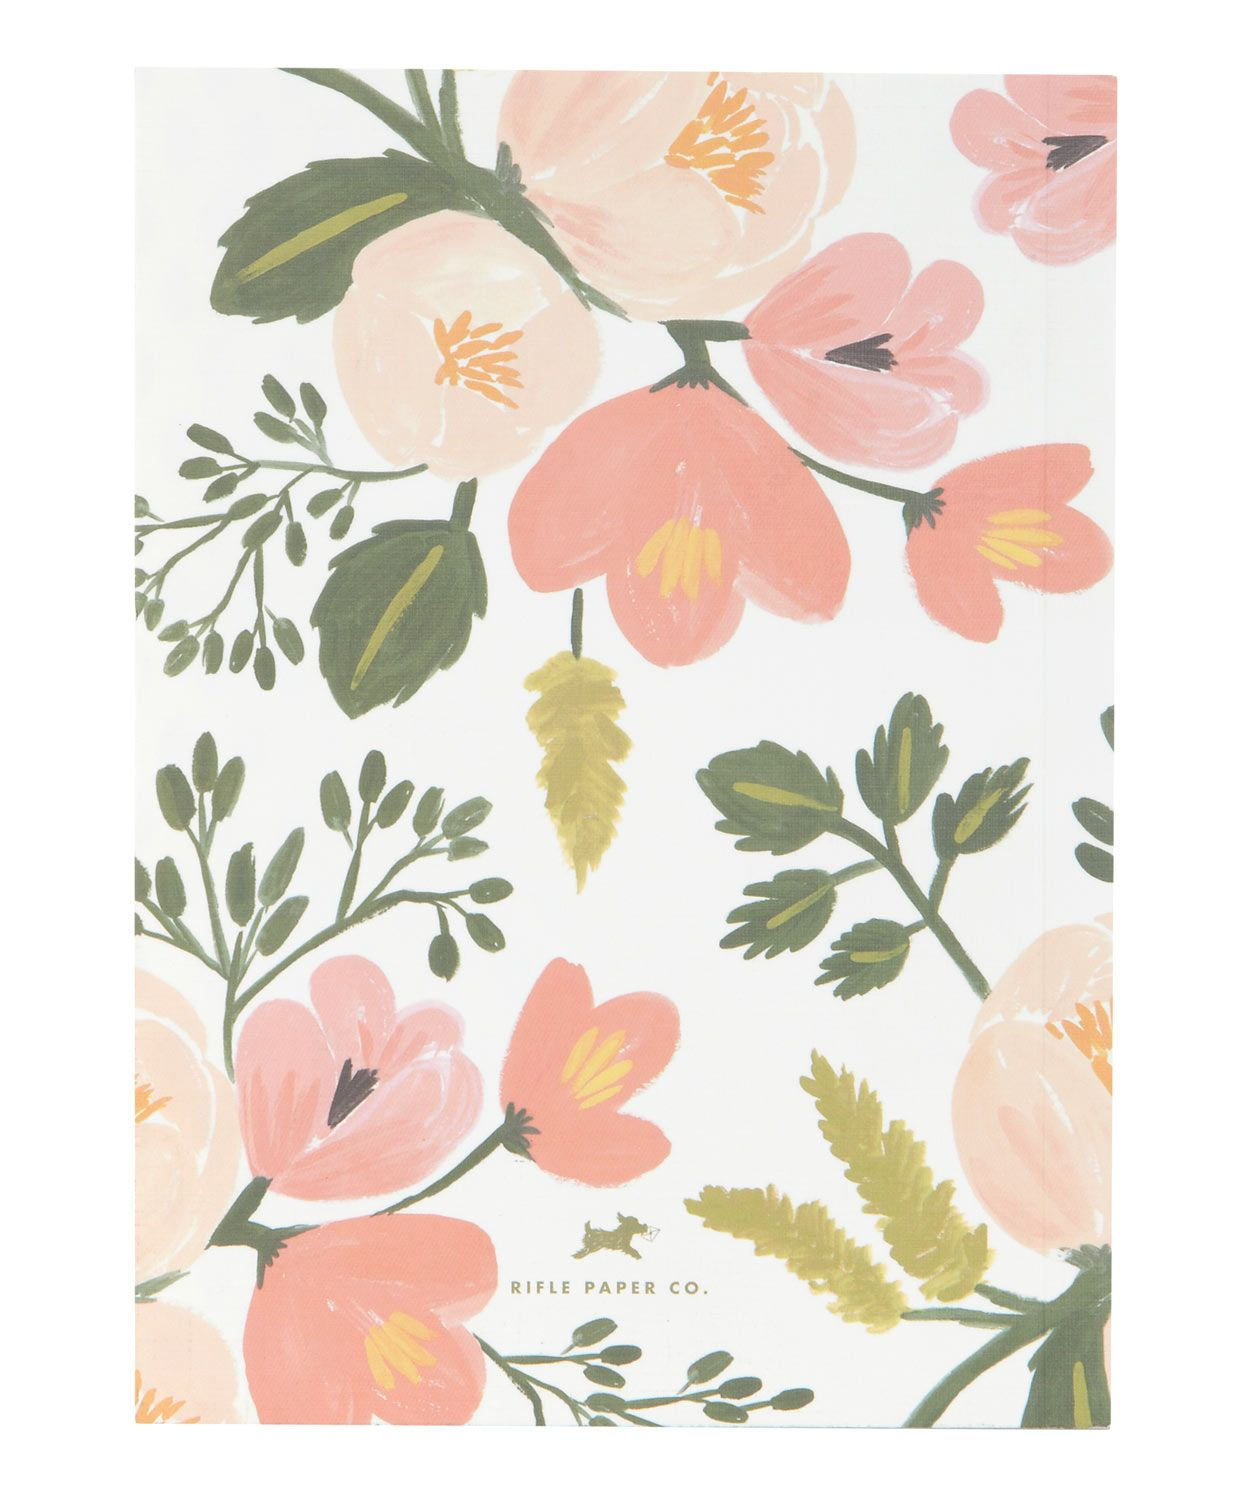 Pin on {rifle paper co} design inspiration